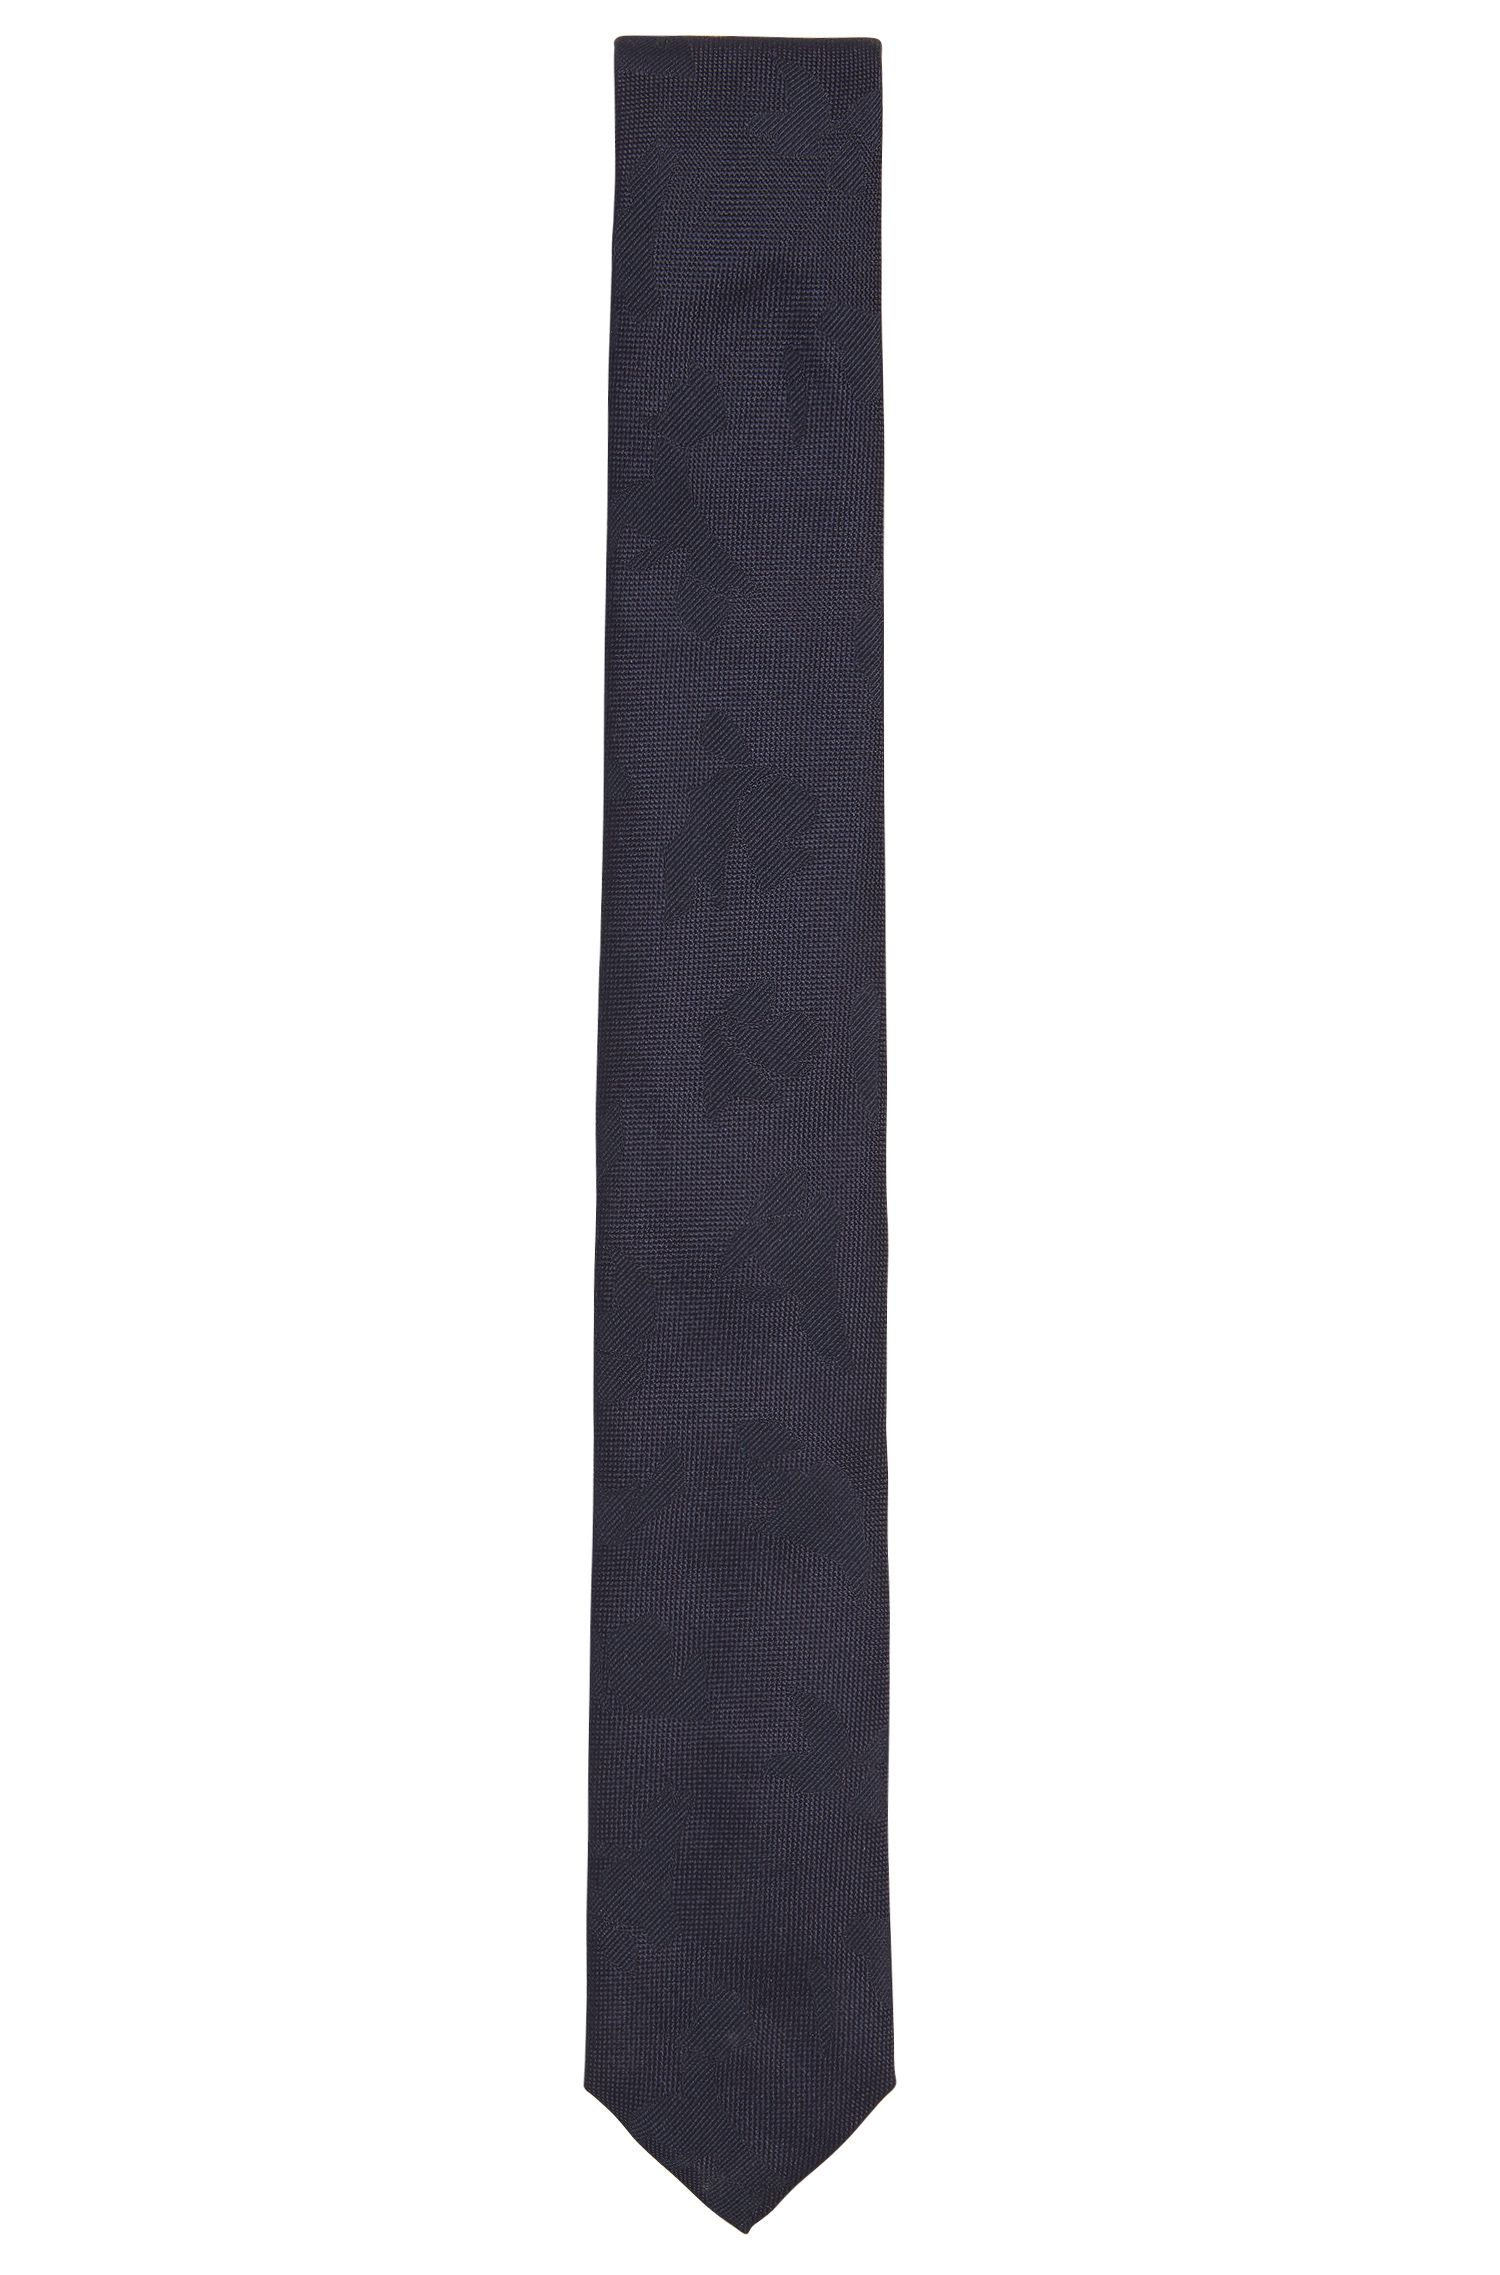 Silk tie with tonal abstract pattern